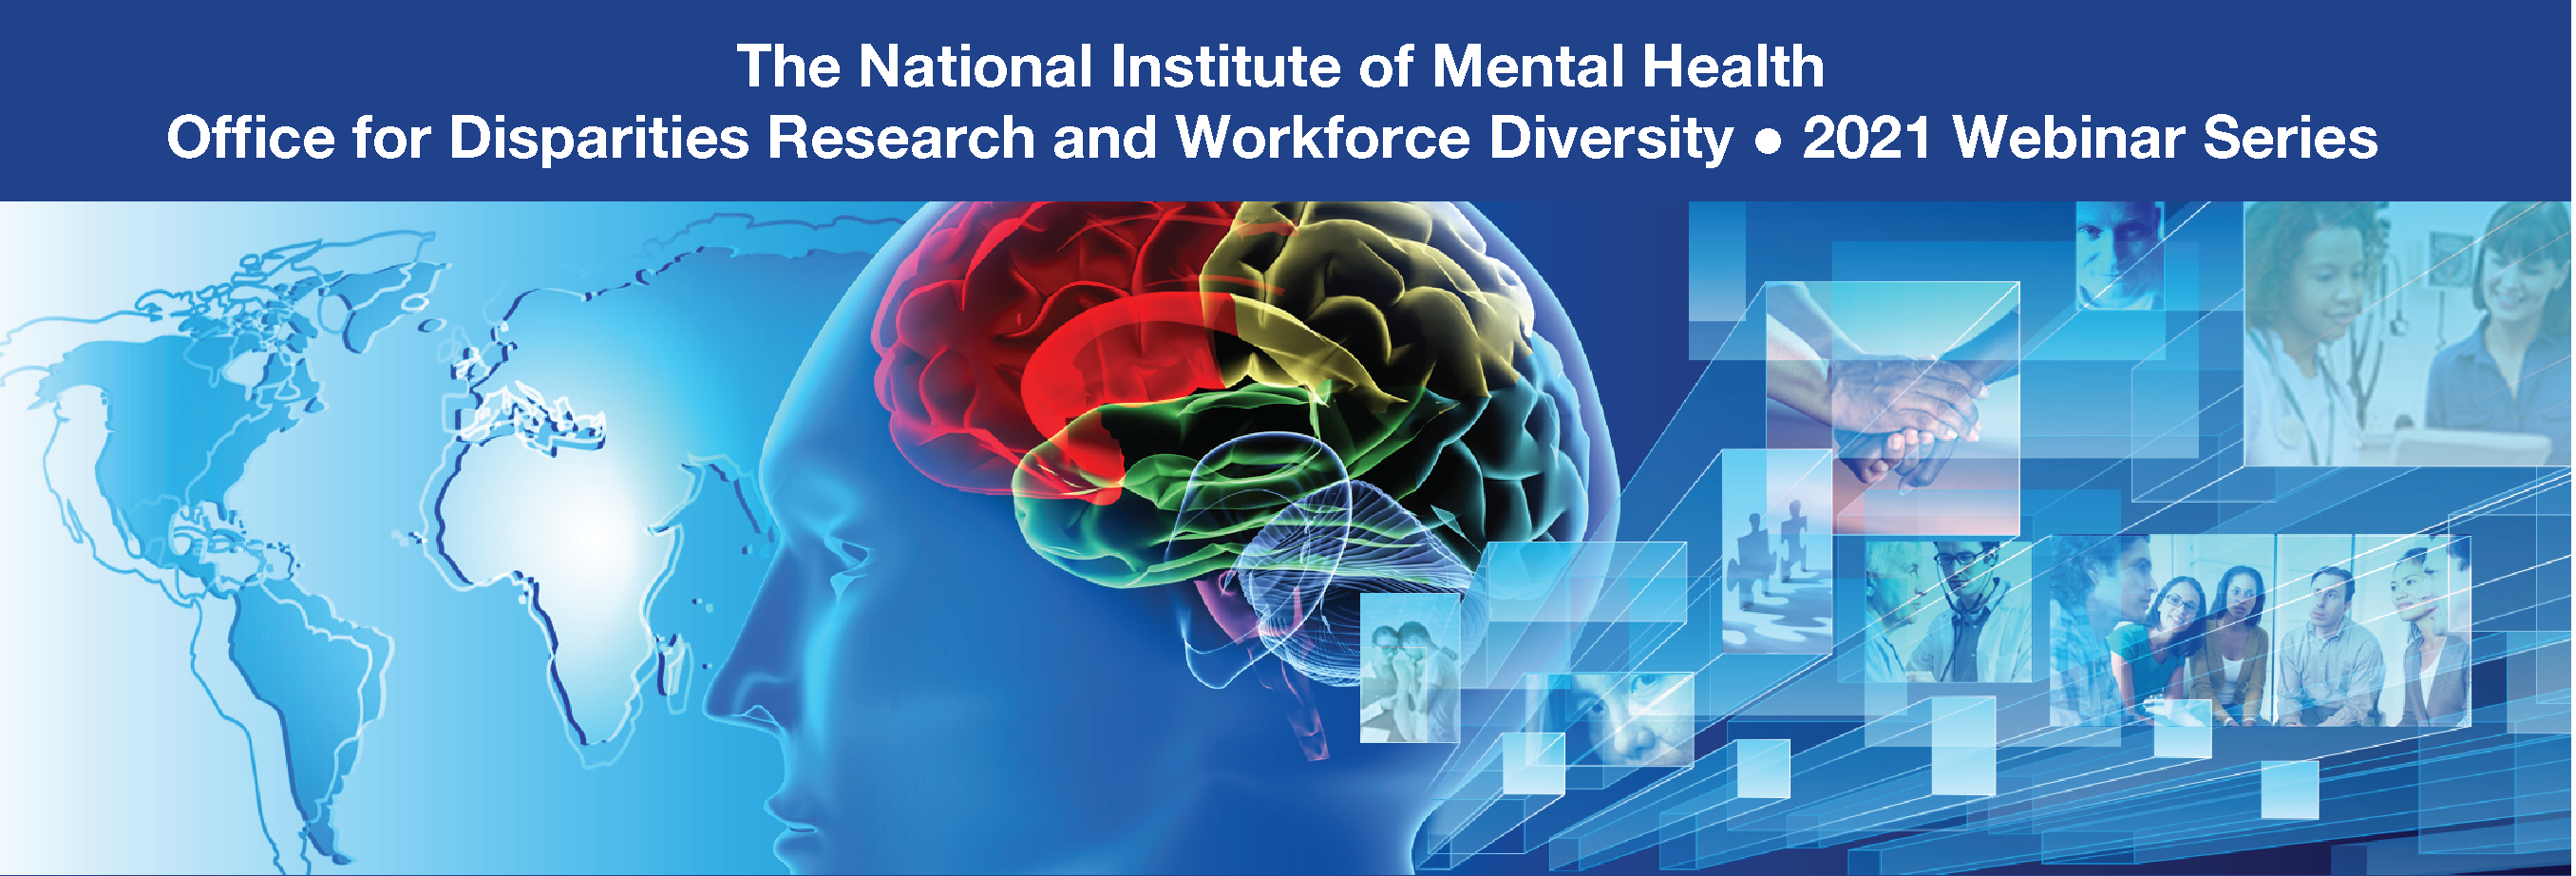 Office for Disparities Research and Workforce Diversity 2021 Webinar Series (ODWD)